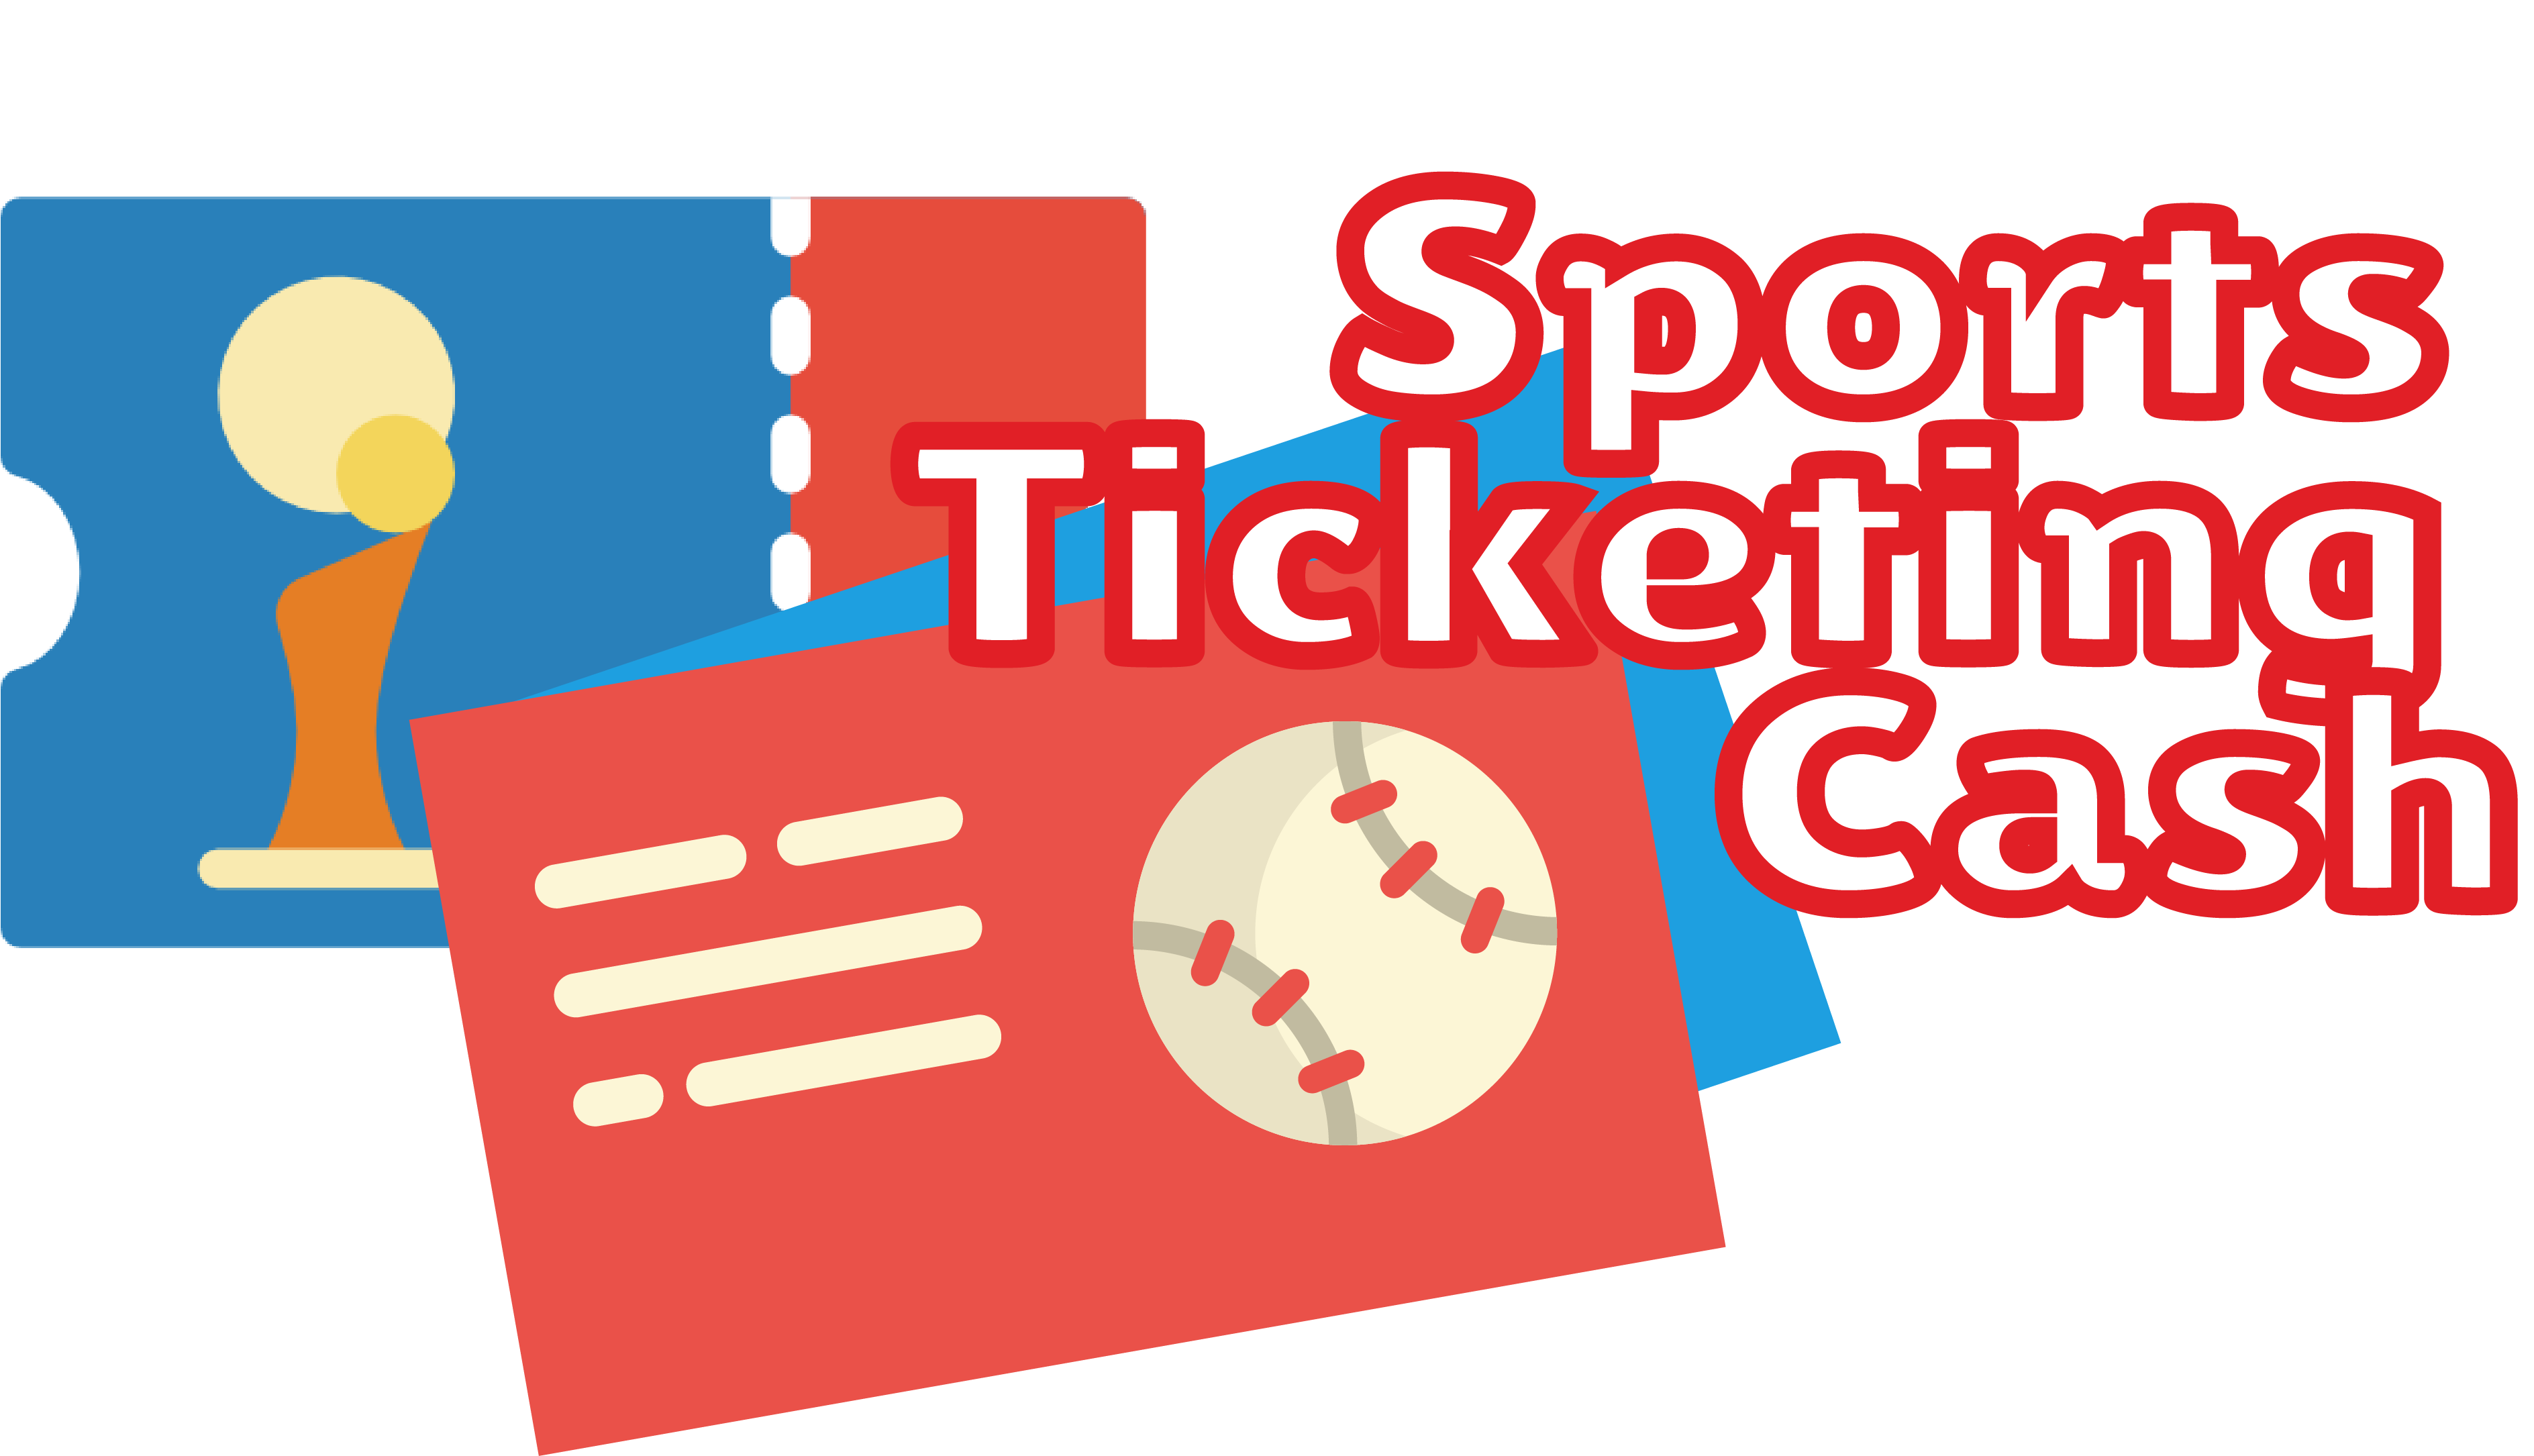 sports ticketing